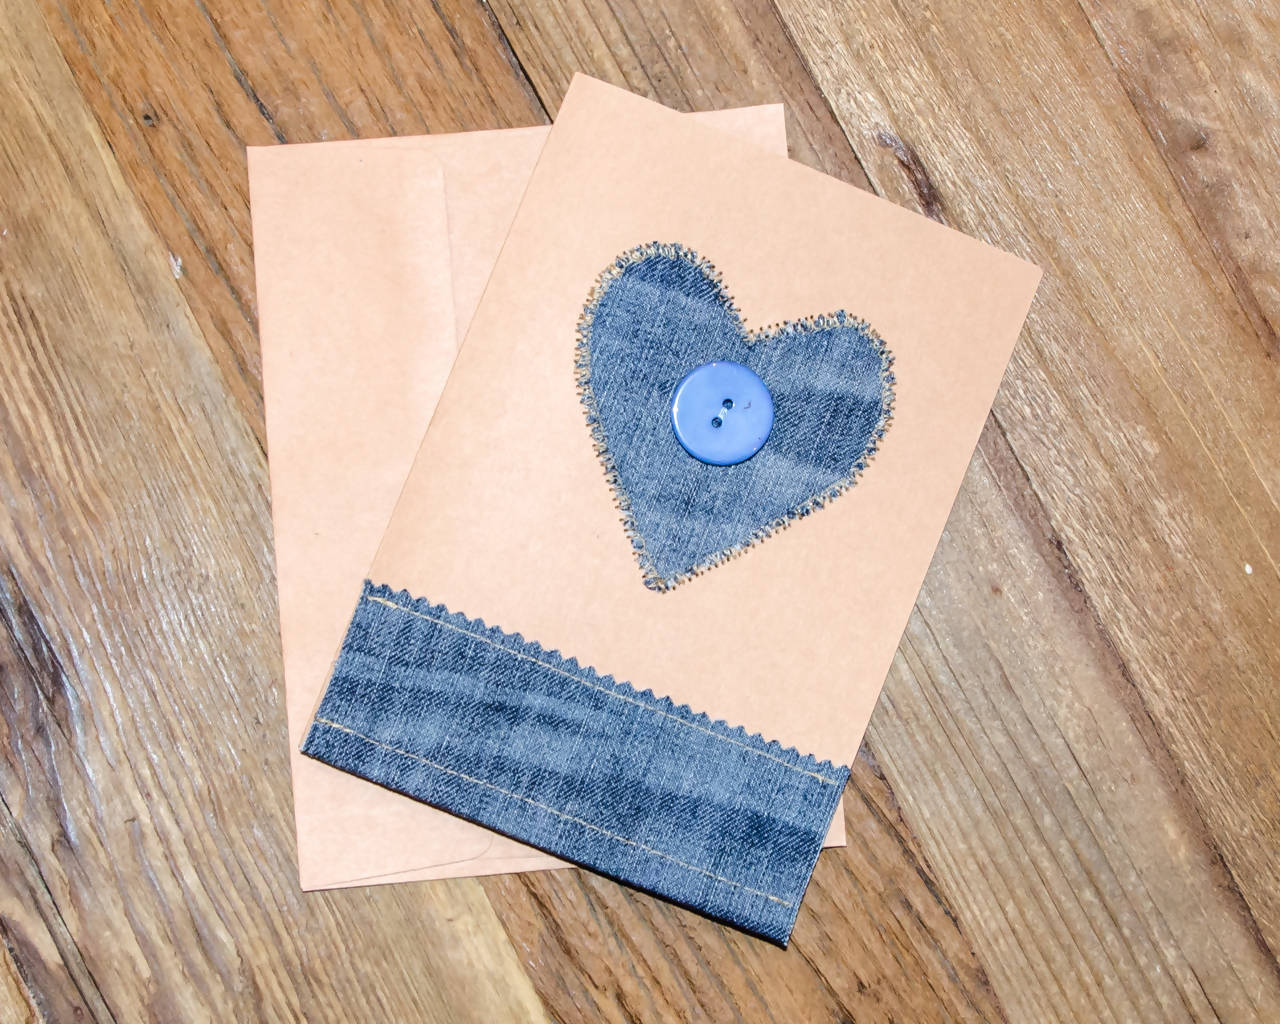 Handmade - Fabric on Paper Greeting Card, Heart-shaped, Denim - Blank Inside for any occasion/Valentines